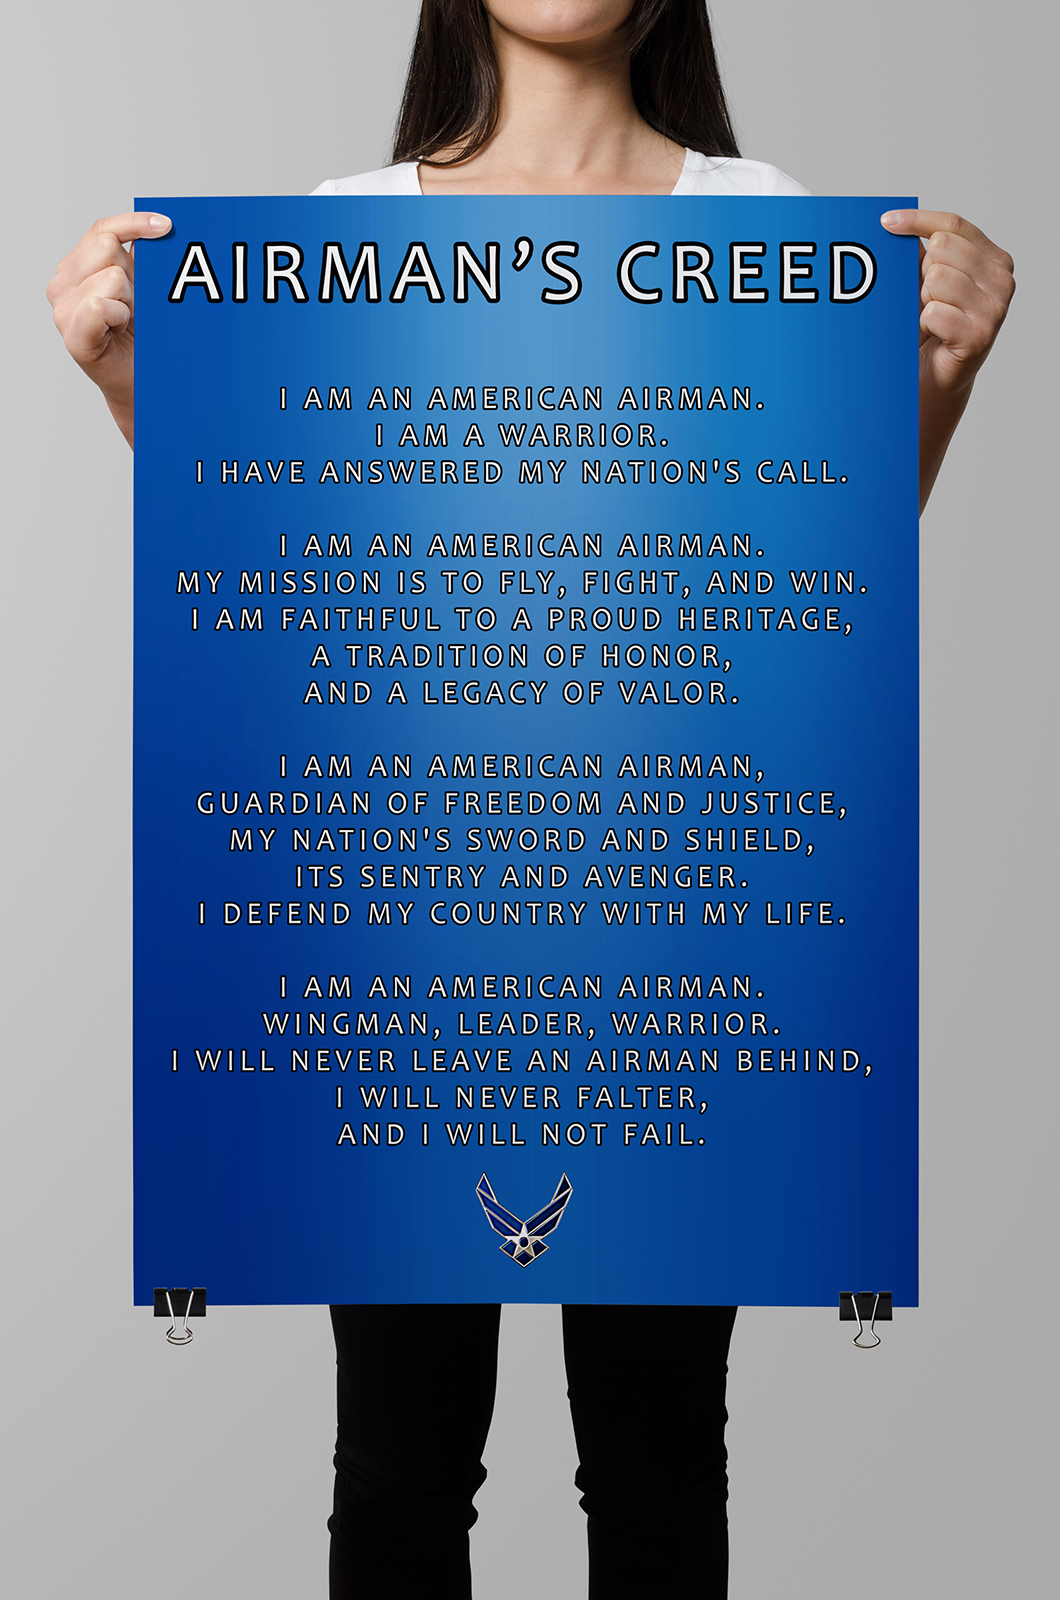 Airmans creed poster honor duty valor airmans creed poster altavistaventures Images